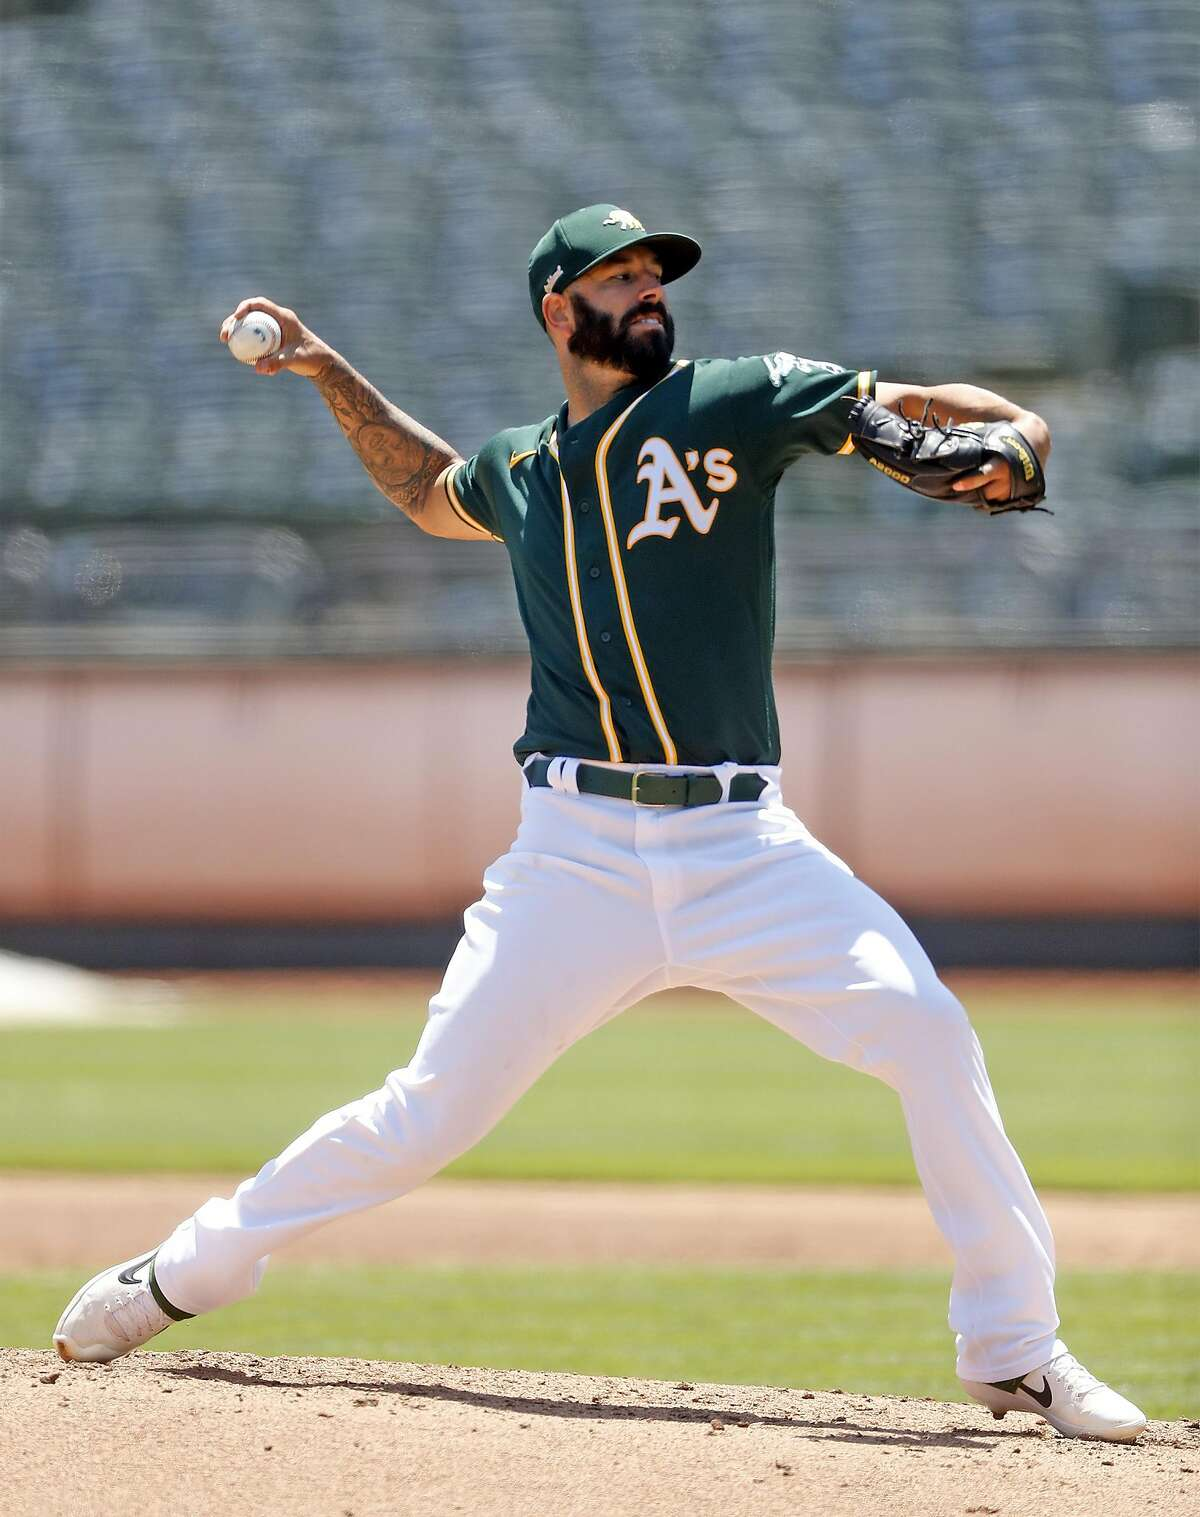 Starting pitcher Mike Fiers is 26-9 with a 4.00 ERA in his two-plus years with the A's. He's 75-62 in his big-league career.